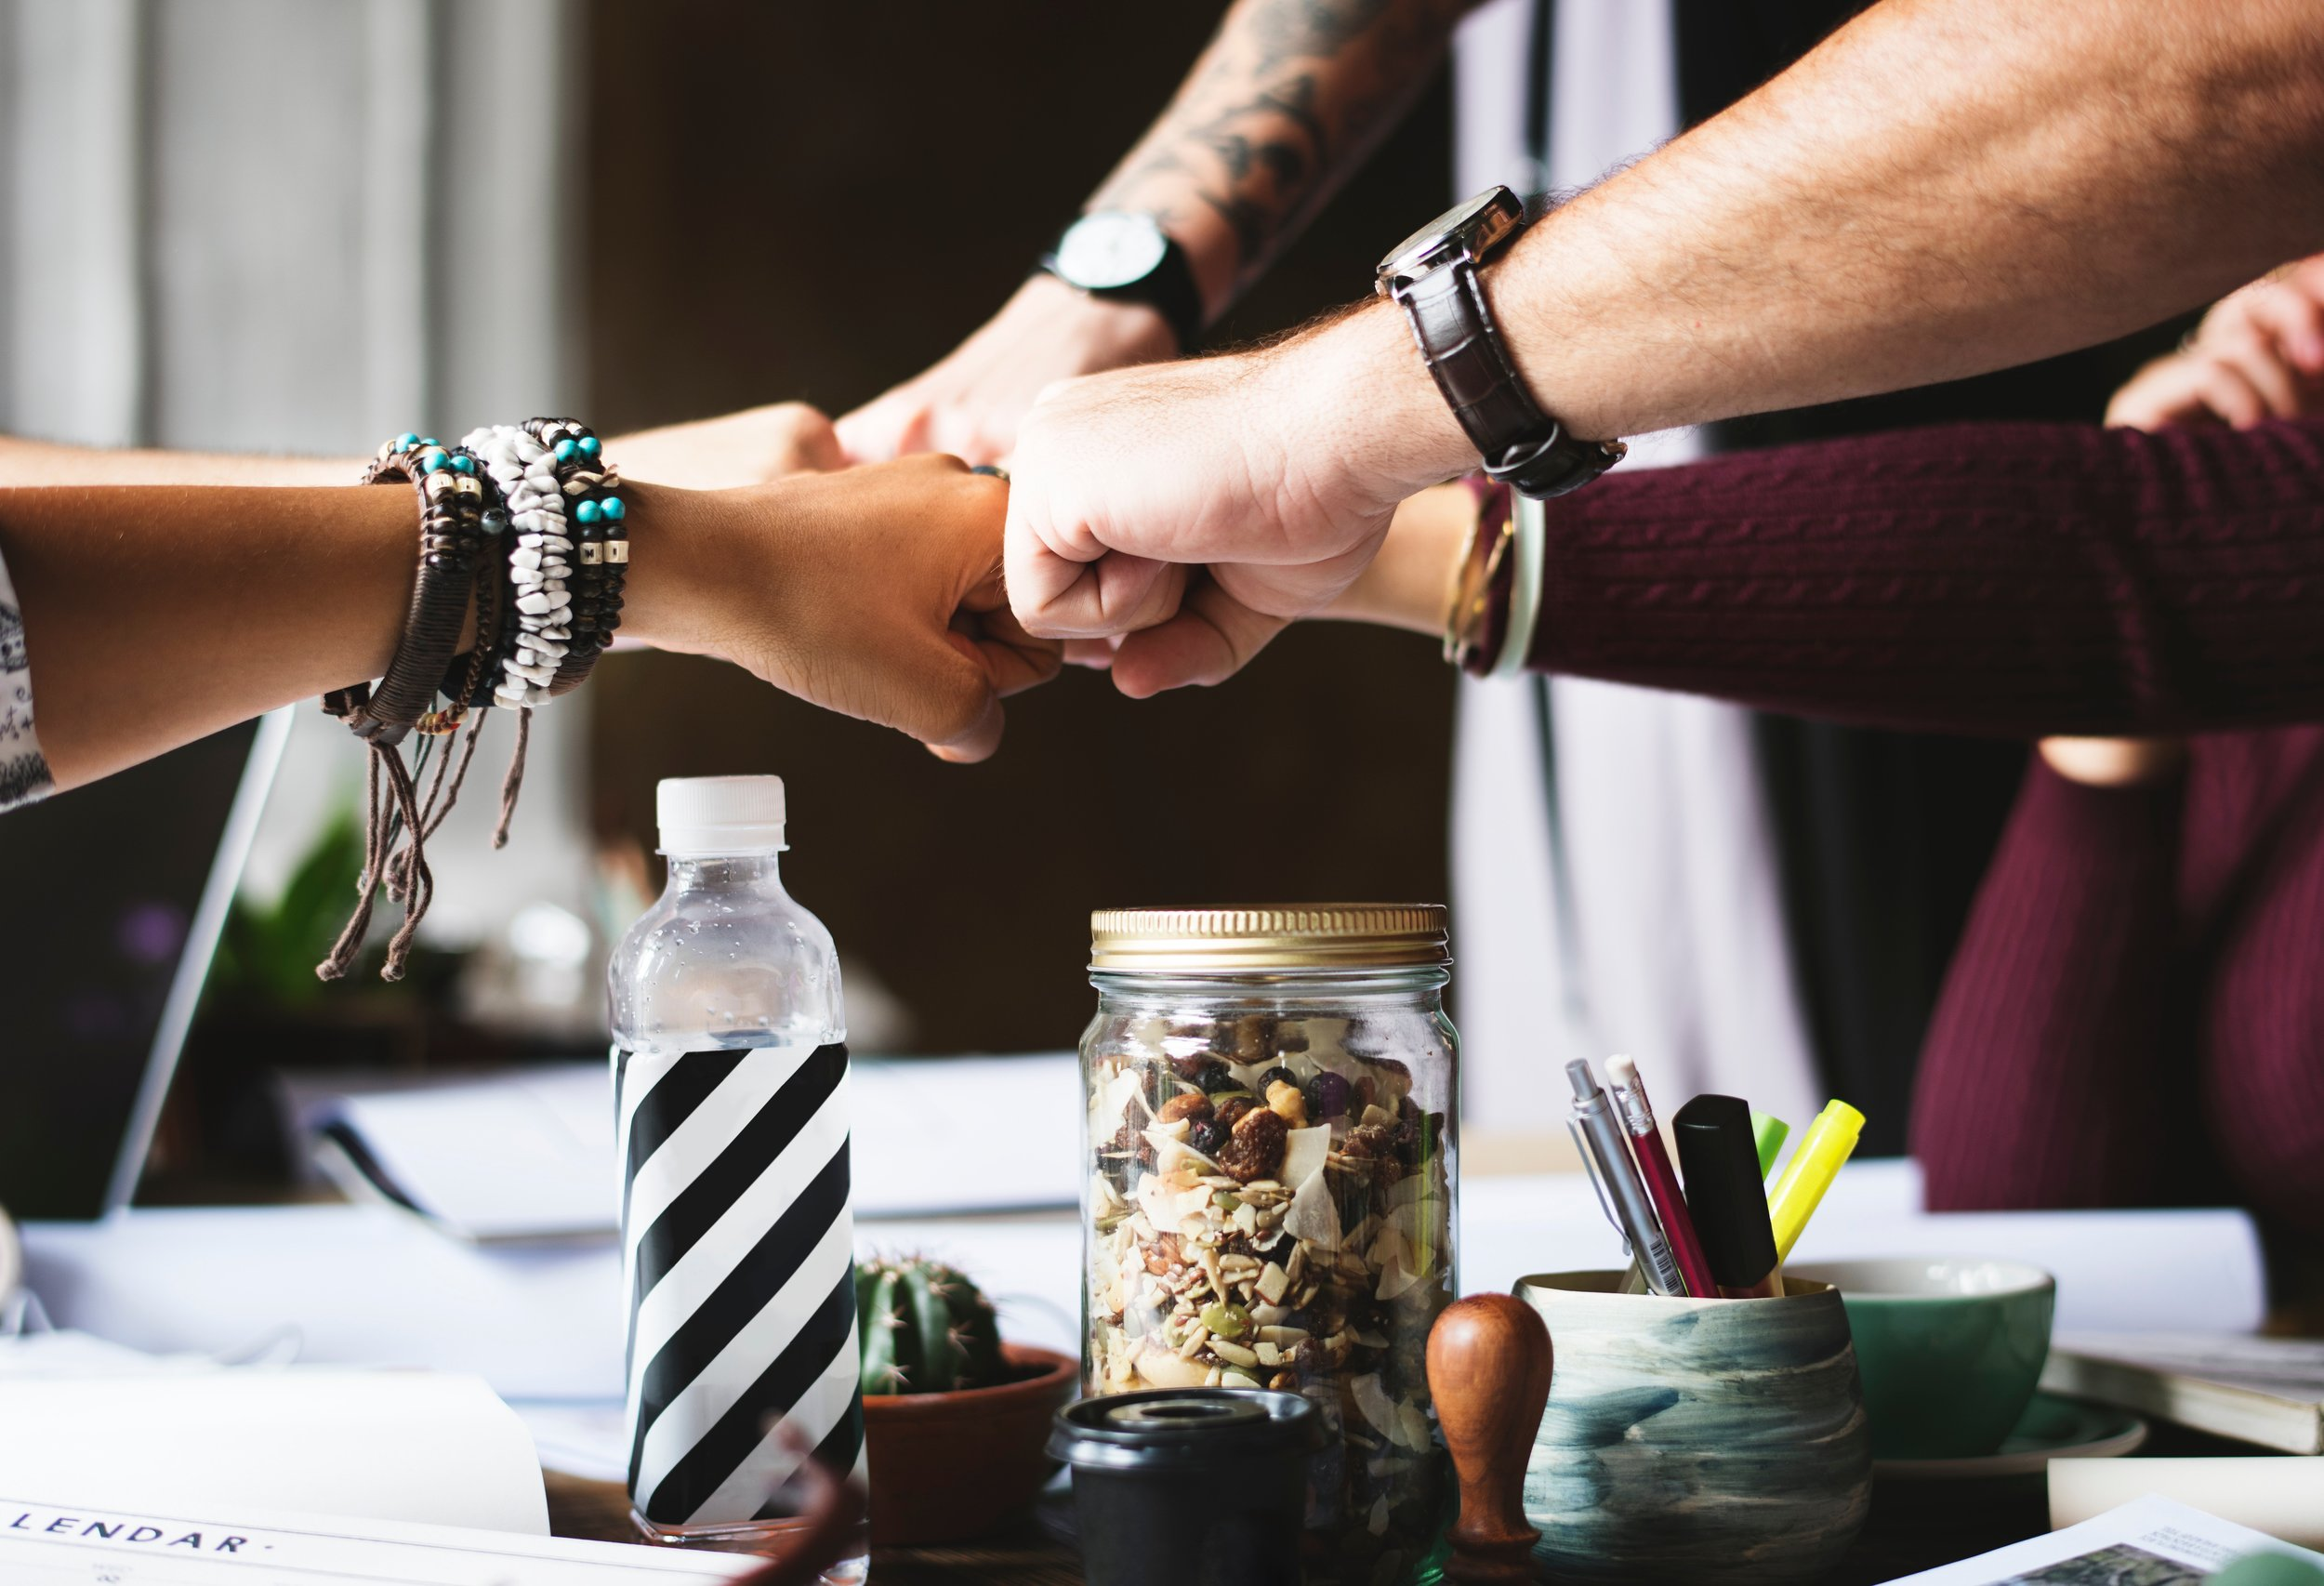 Your organization is as unique as the individual team members who build your business.